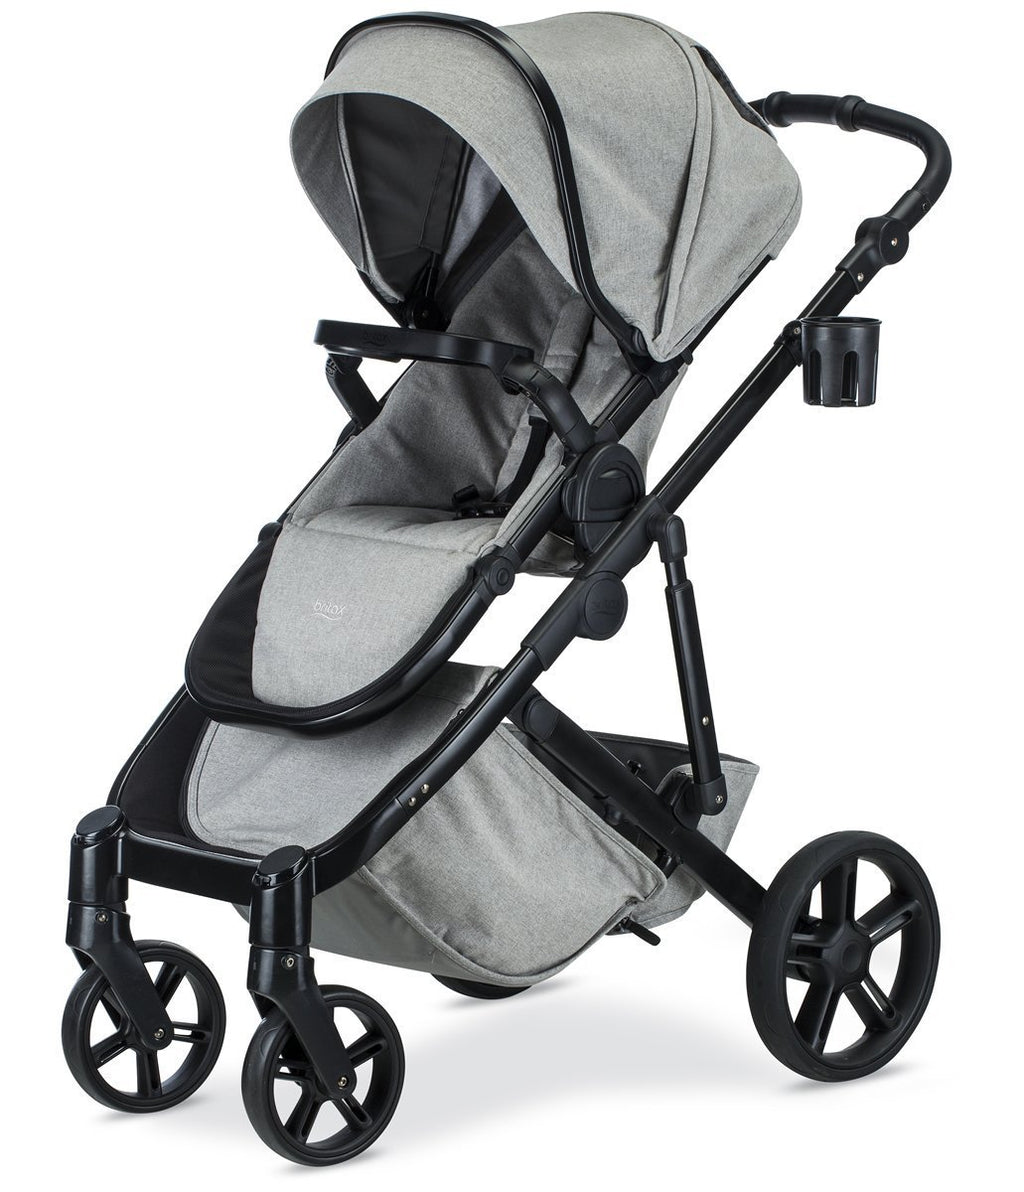 Britax B-Ready G3 Stroller - Nanotex (Moisture, Odor and Stain-Resistant Fabric)